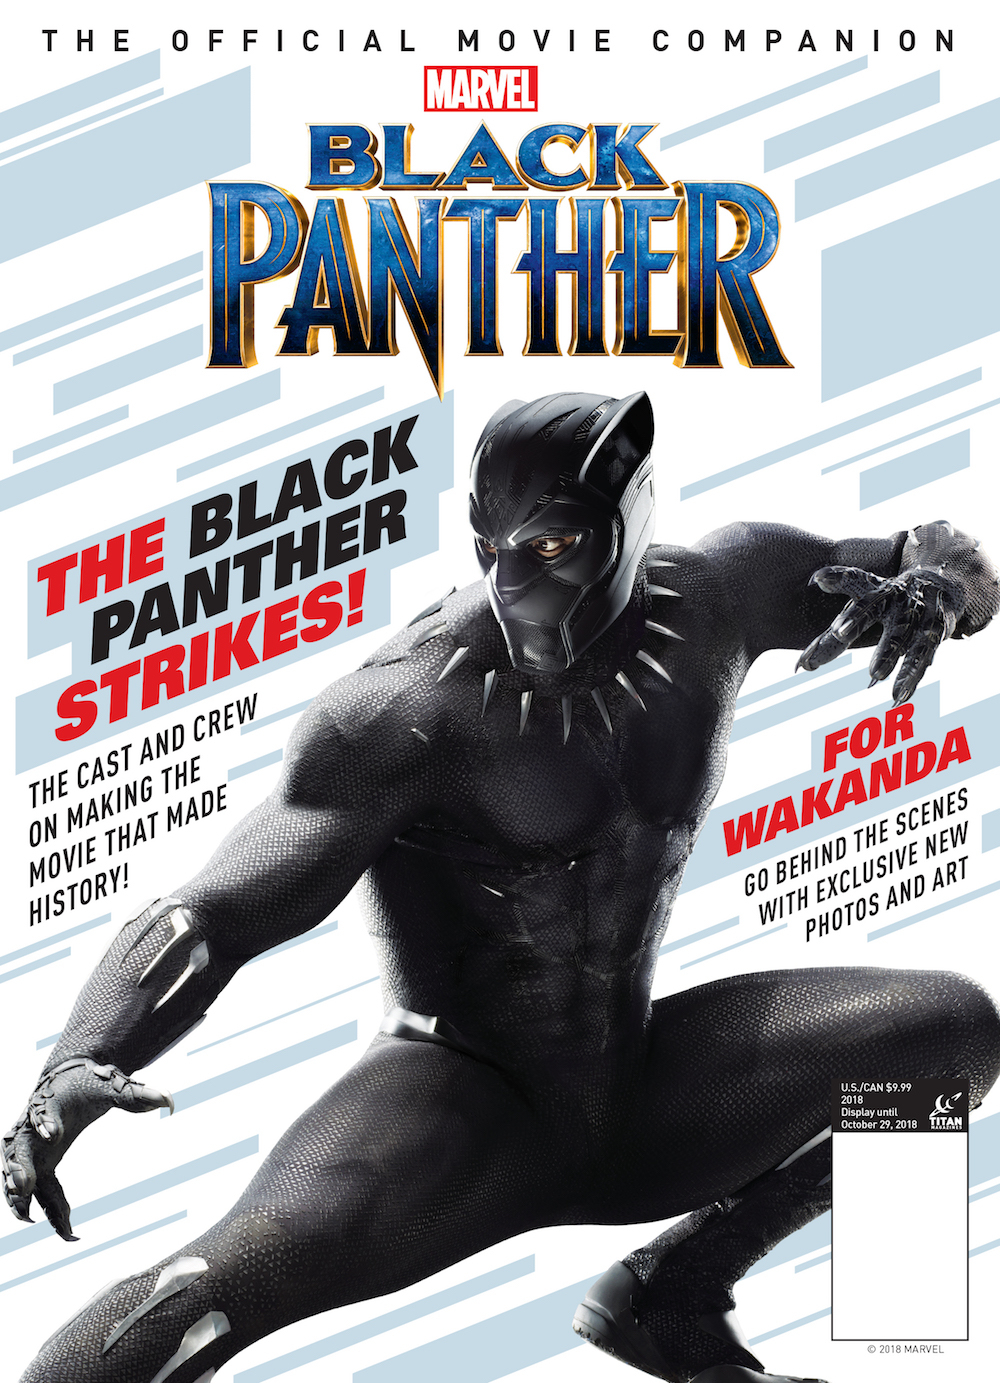 BLACK PANTHER OFFICIAL MOVIE COMPANION NS MAGAZINE